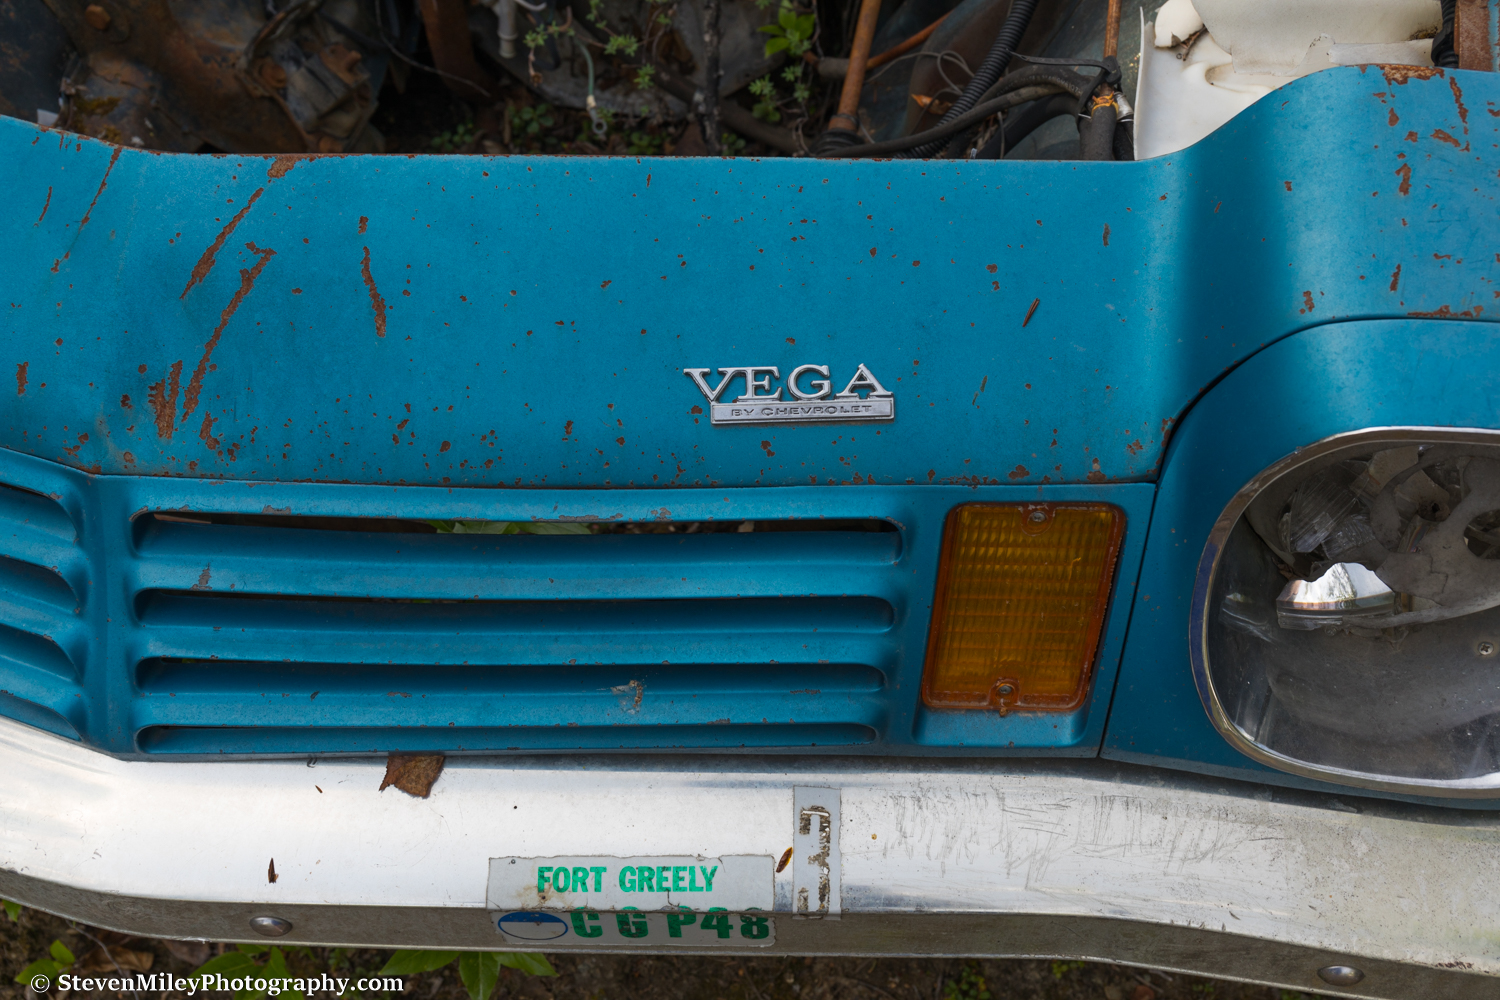 This Chevrolet Vega still features a Fort Greely decal. The Vega was last produced in 1977.